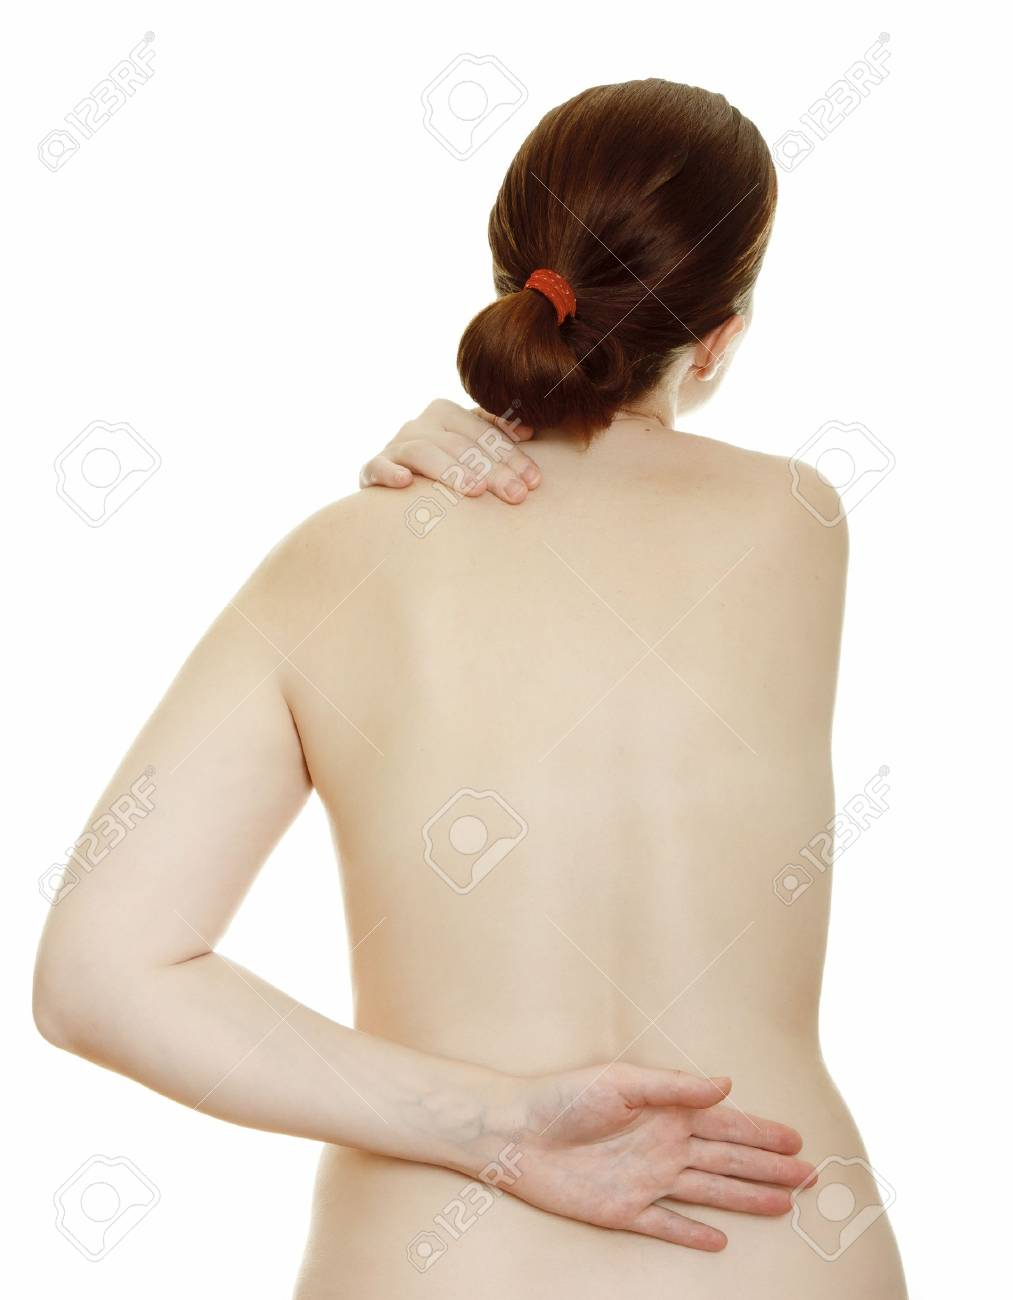 Osteochondrosis - woman massaging pain back, isolated over a white background. Stock Photo - 9742022